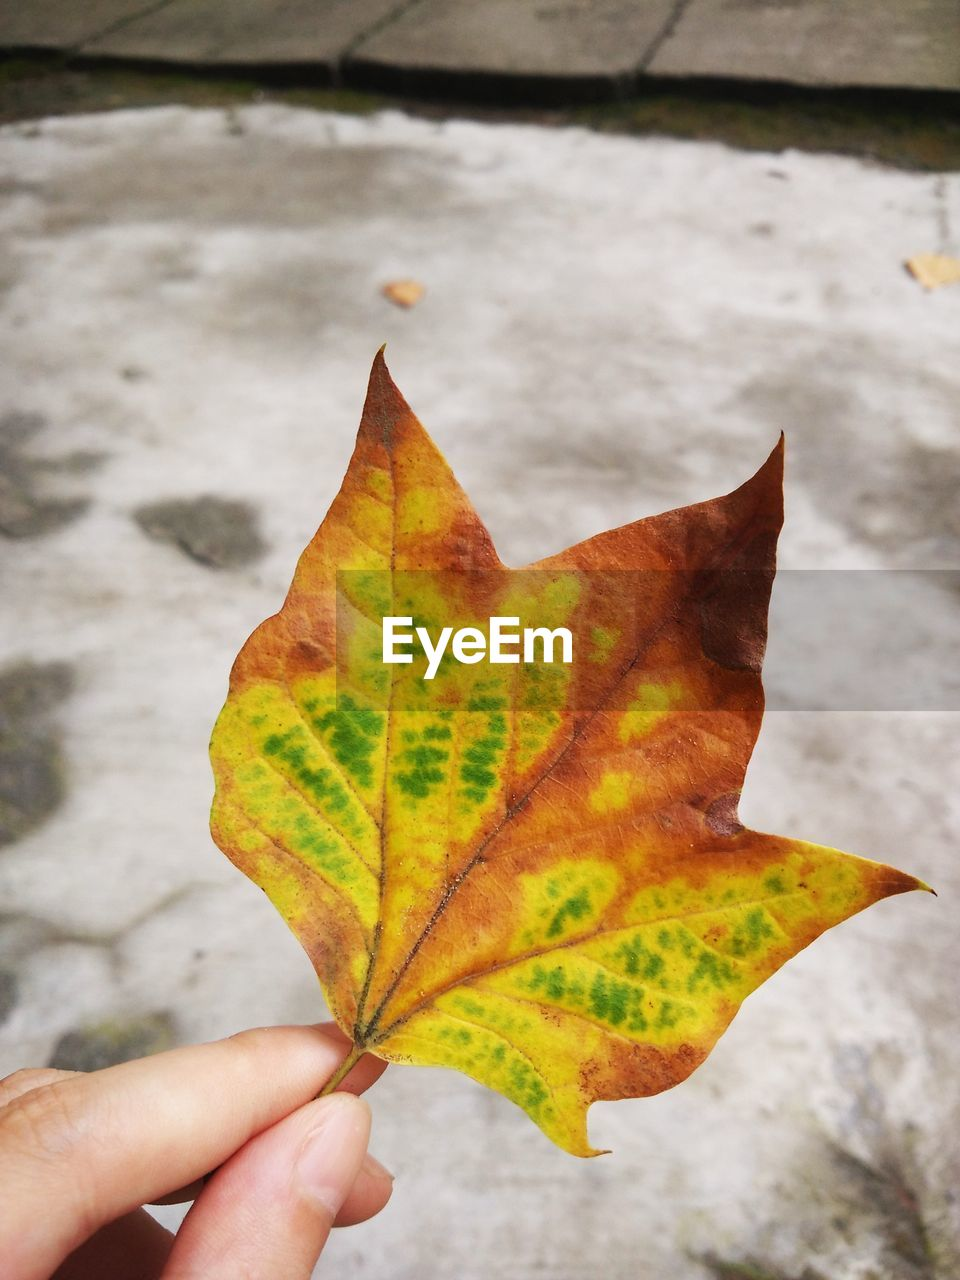 Cropped image of hand holding dry leaf